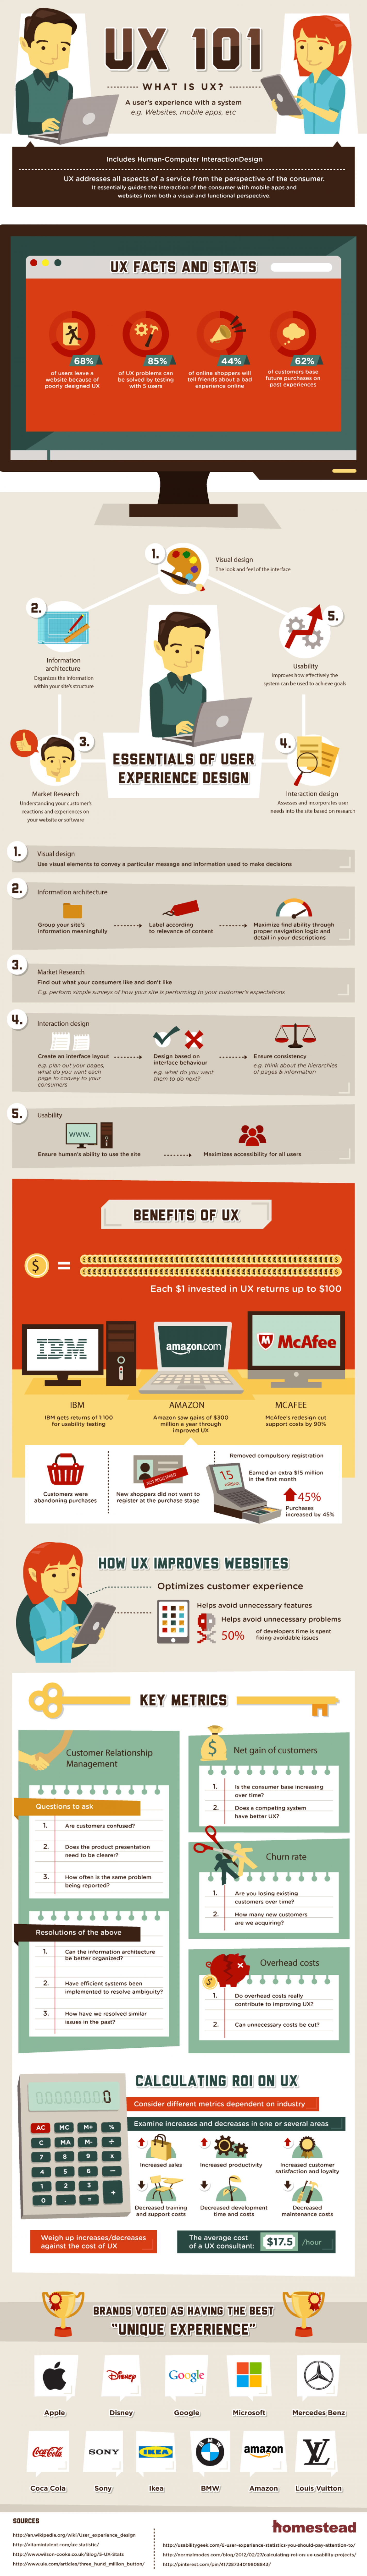 UX 101 – What is User Experience Infographic